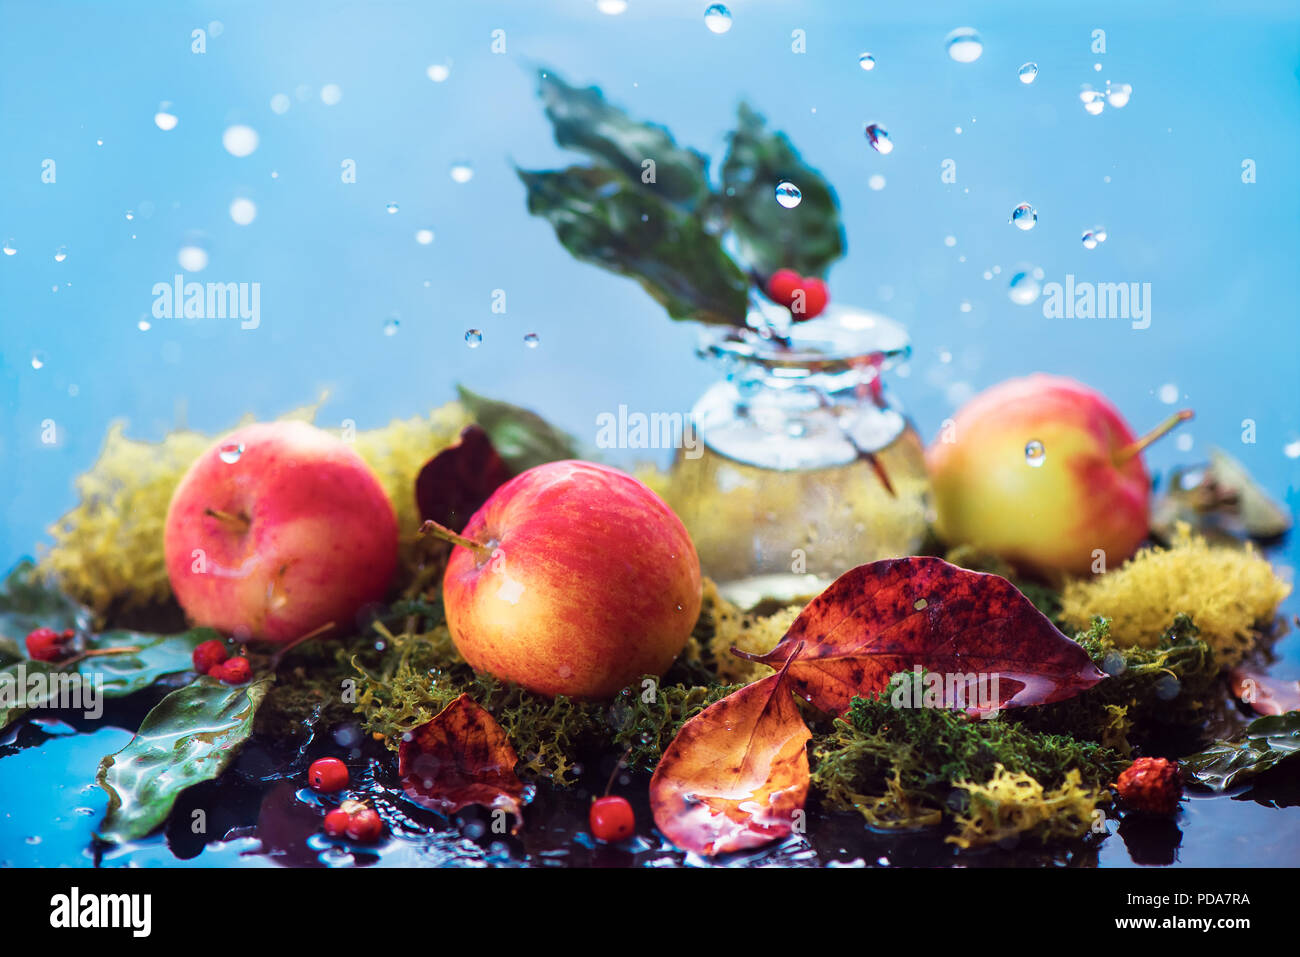 Autumn apples still life. Fall harvest header under the rain with water drops and copy space. Red small organic ranet apples with a glass jar and fallen leaves - Stock Image